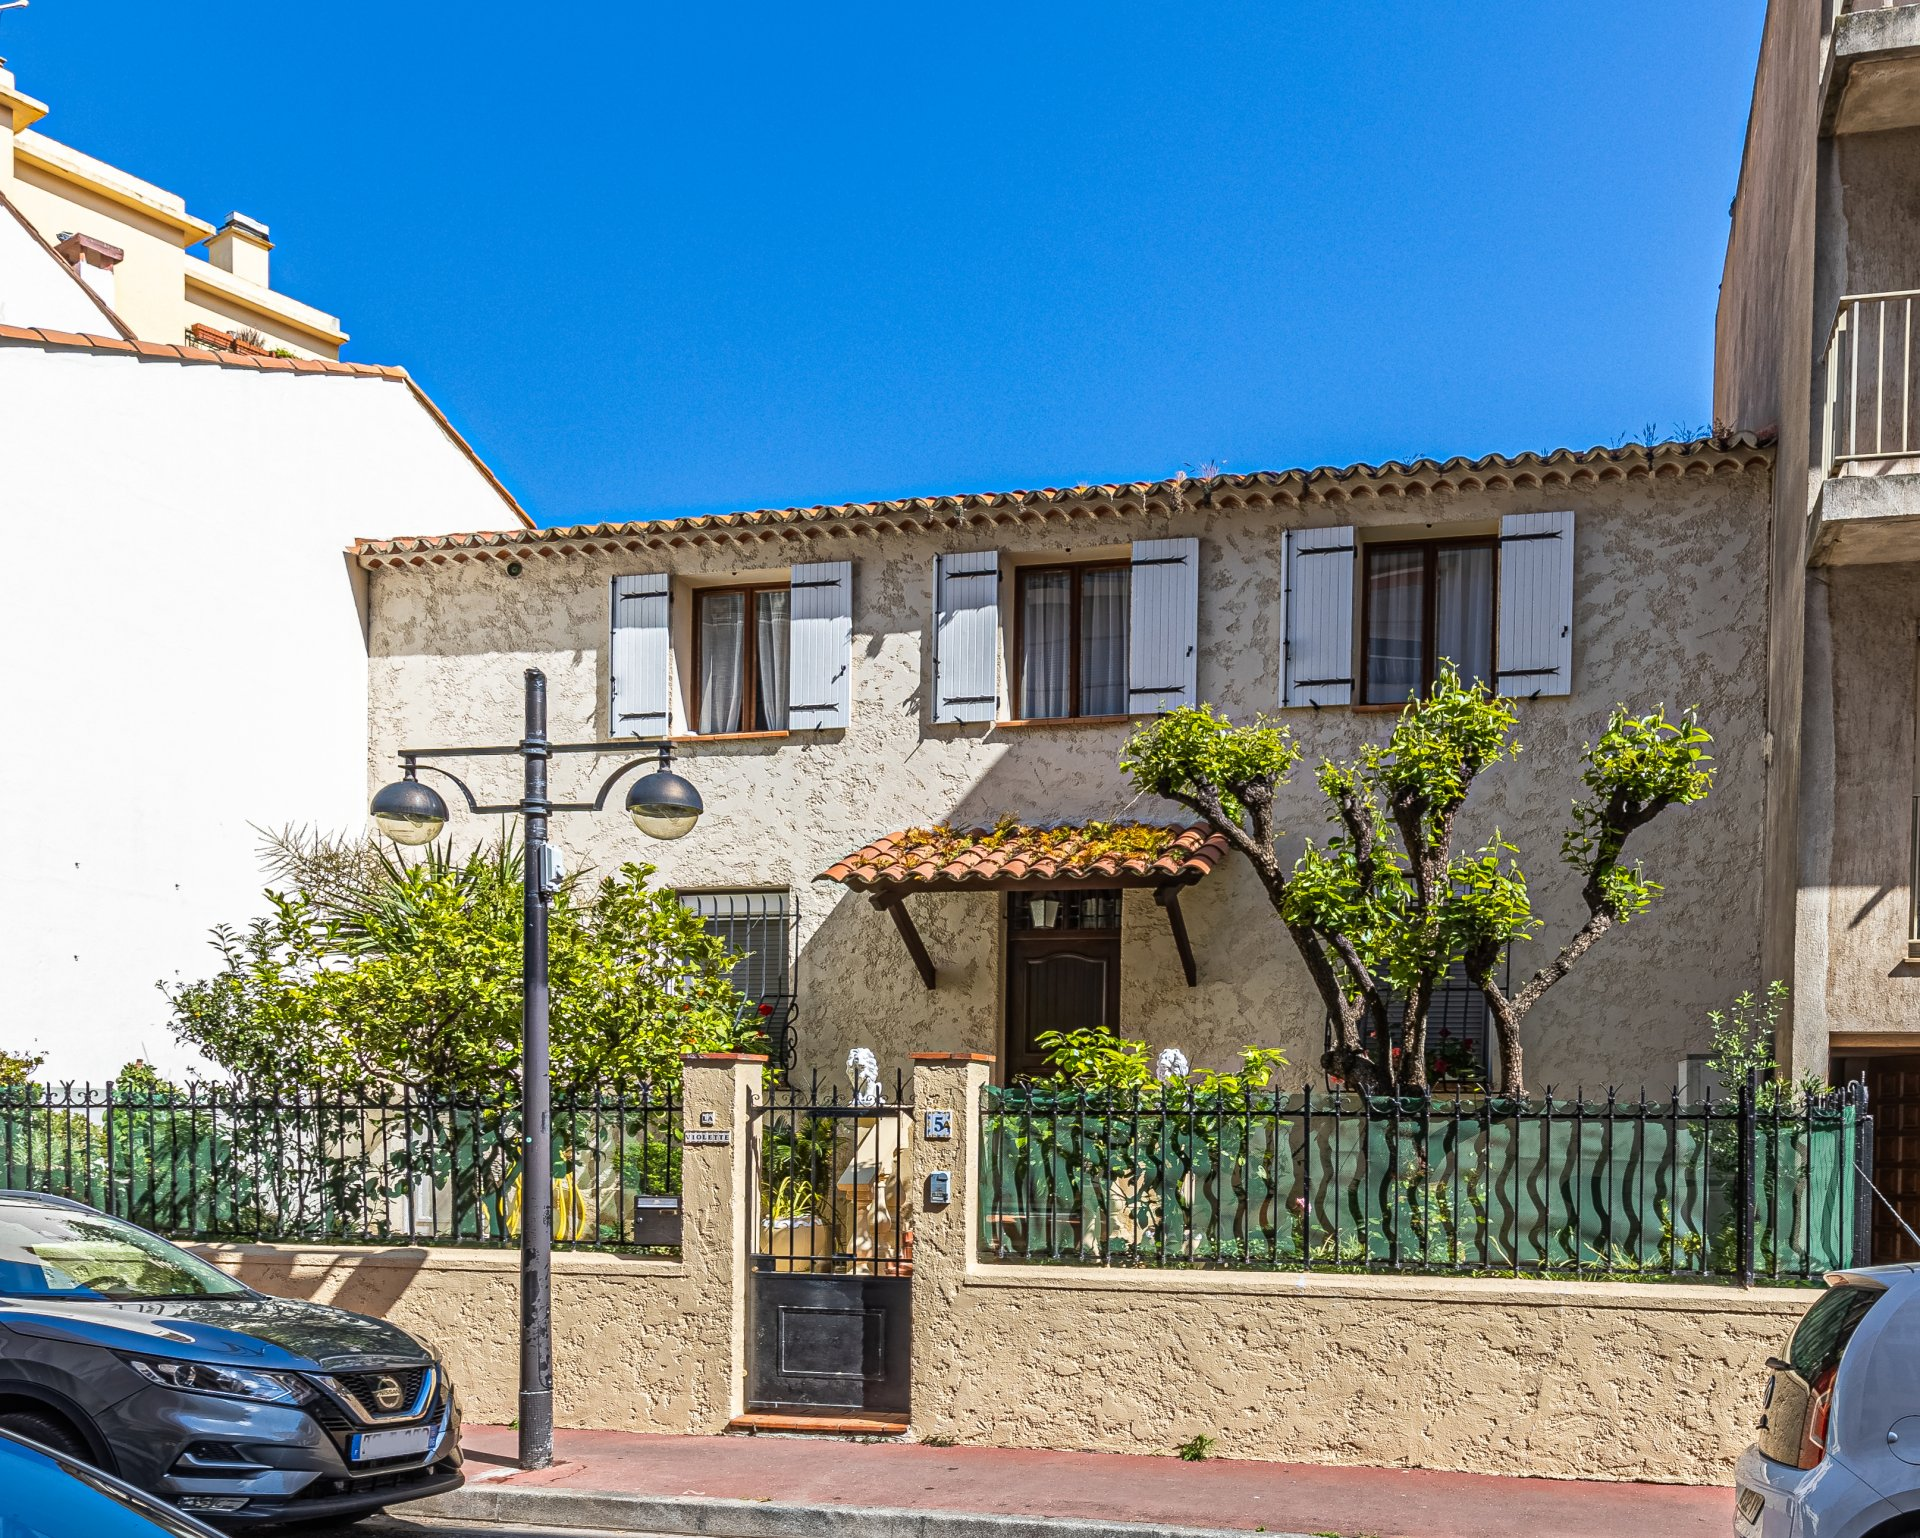 Charming town house with garden, a few meters from the sea in Antibes